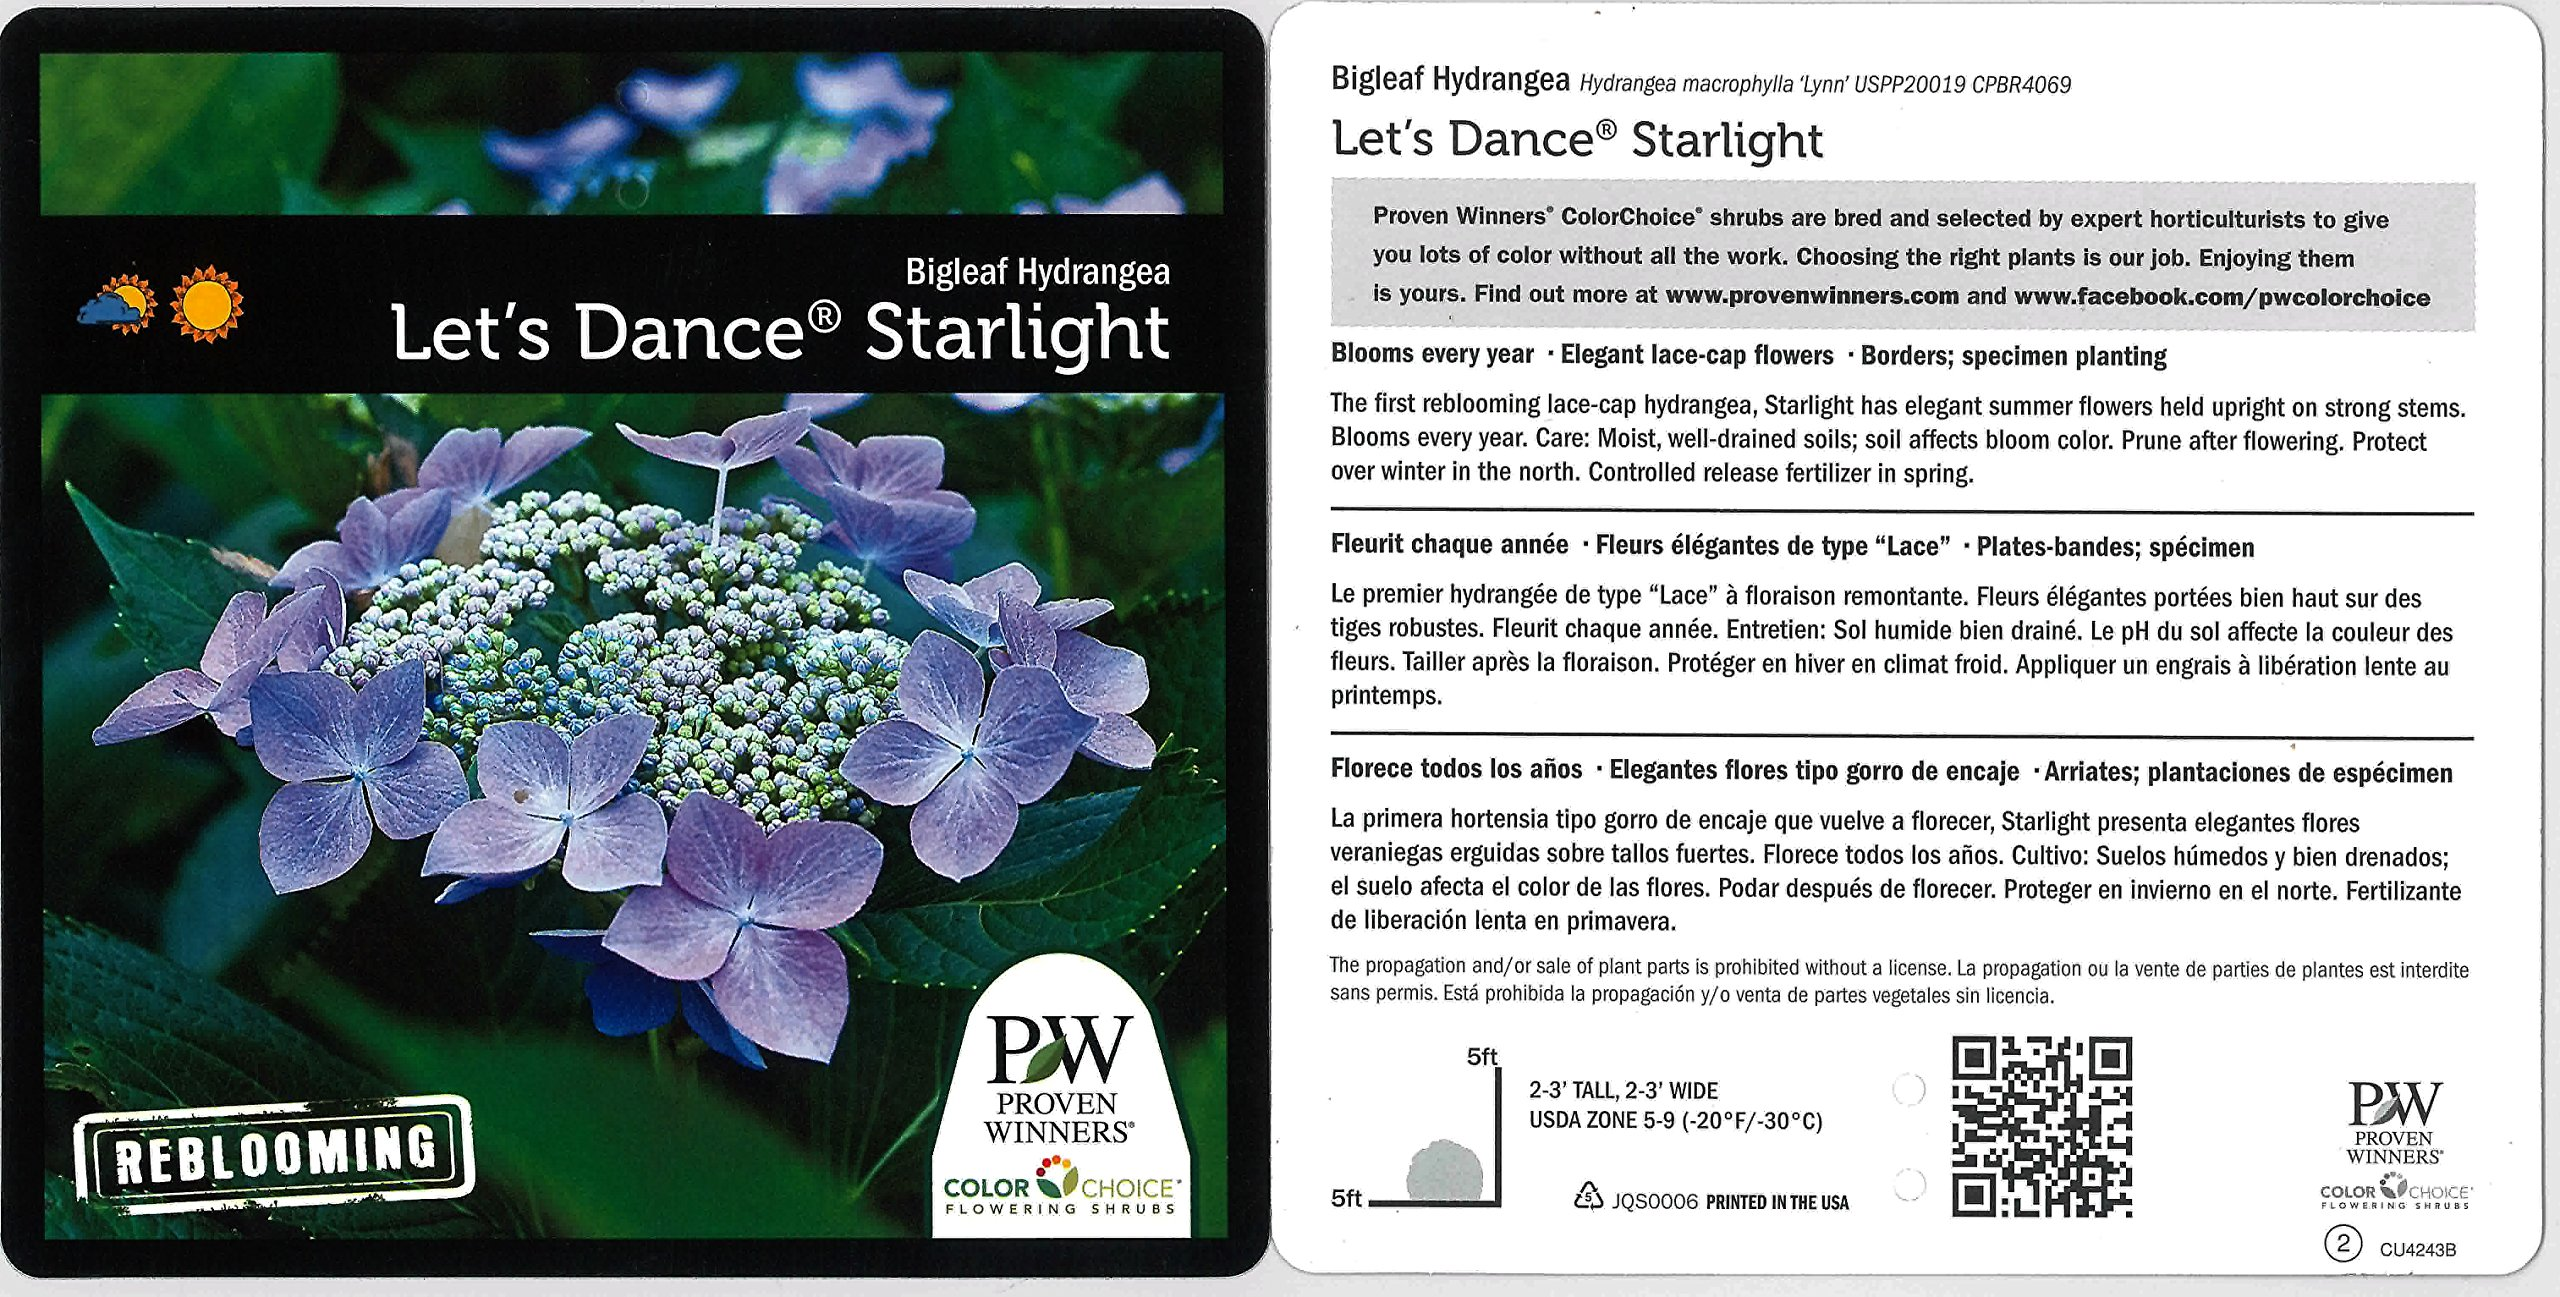 1 Gal. Let's Dance Starlight Bigleaf Hydrangea (Macrophylla) Live Shrub, Blue or Pink Flowers by Proven Winners (Image #3)